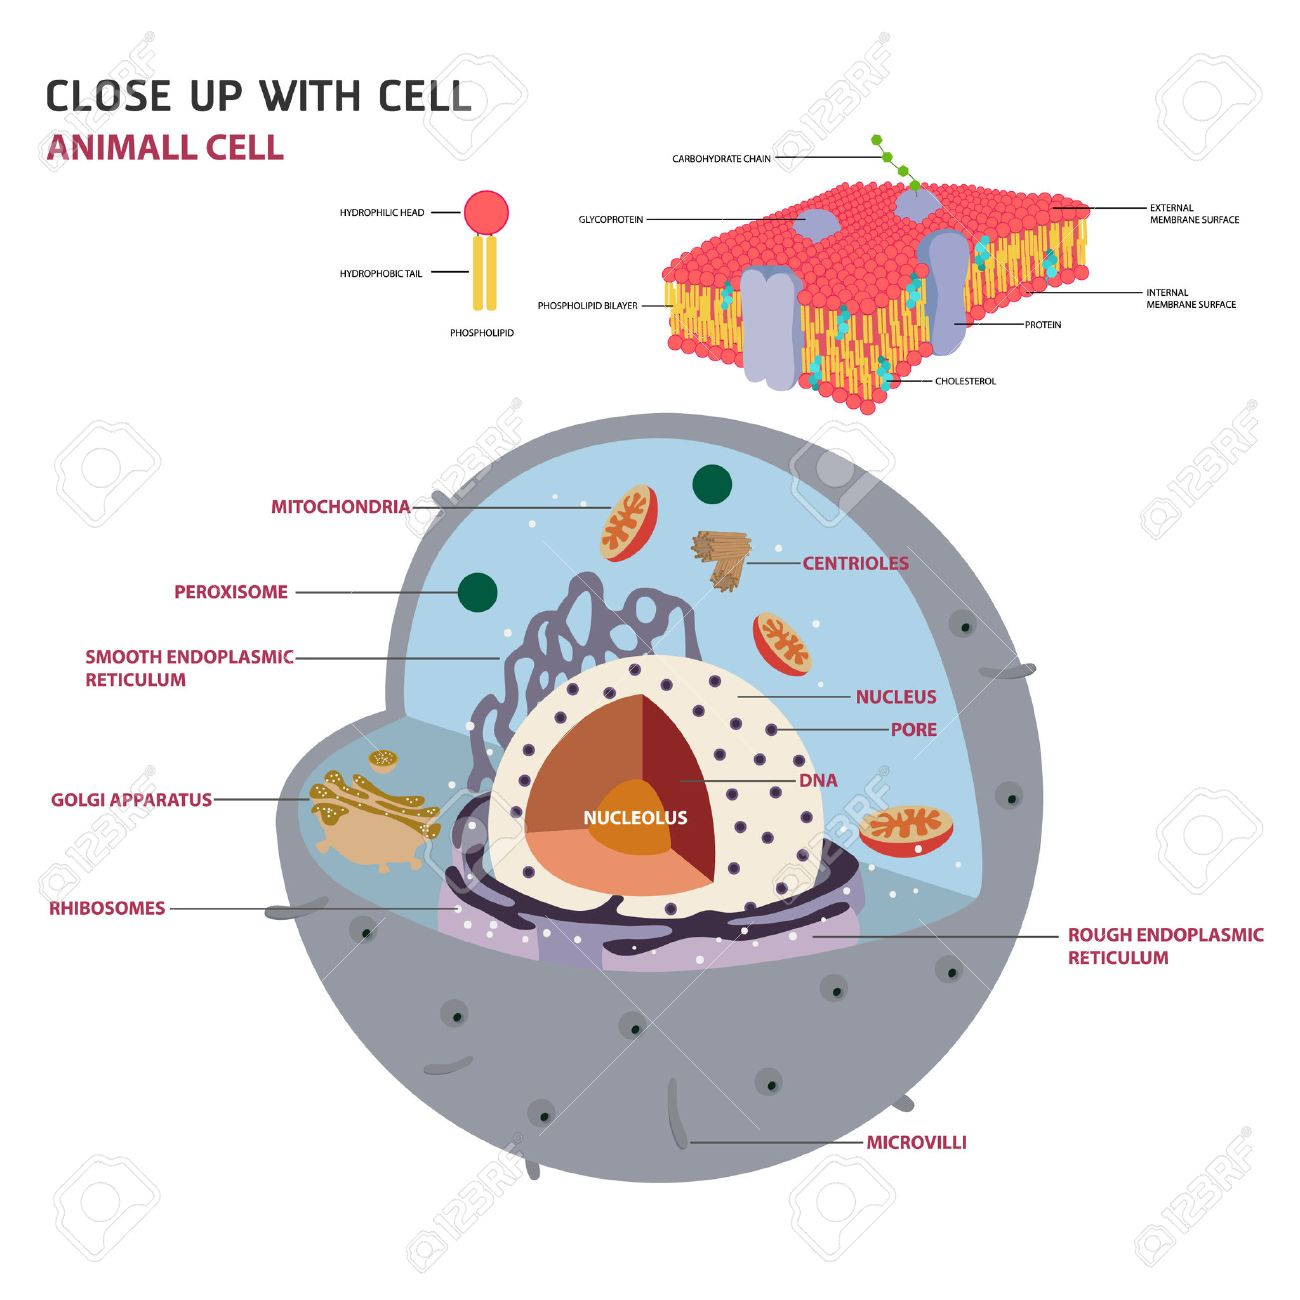 Lysosome stock photos royalty free lysosome images animal cell cross section structure of a eukaryotic cell vector diagram illustration ccuart Choice Image